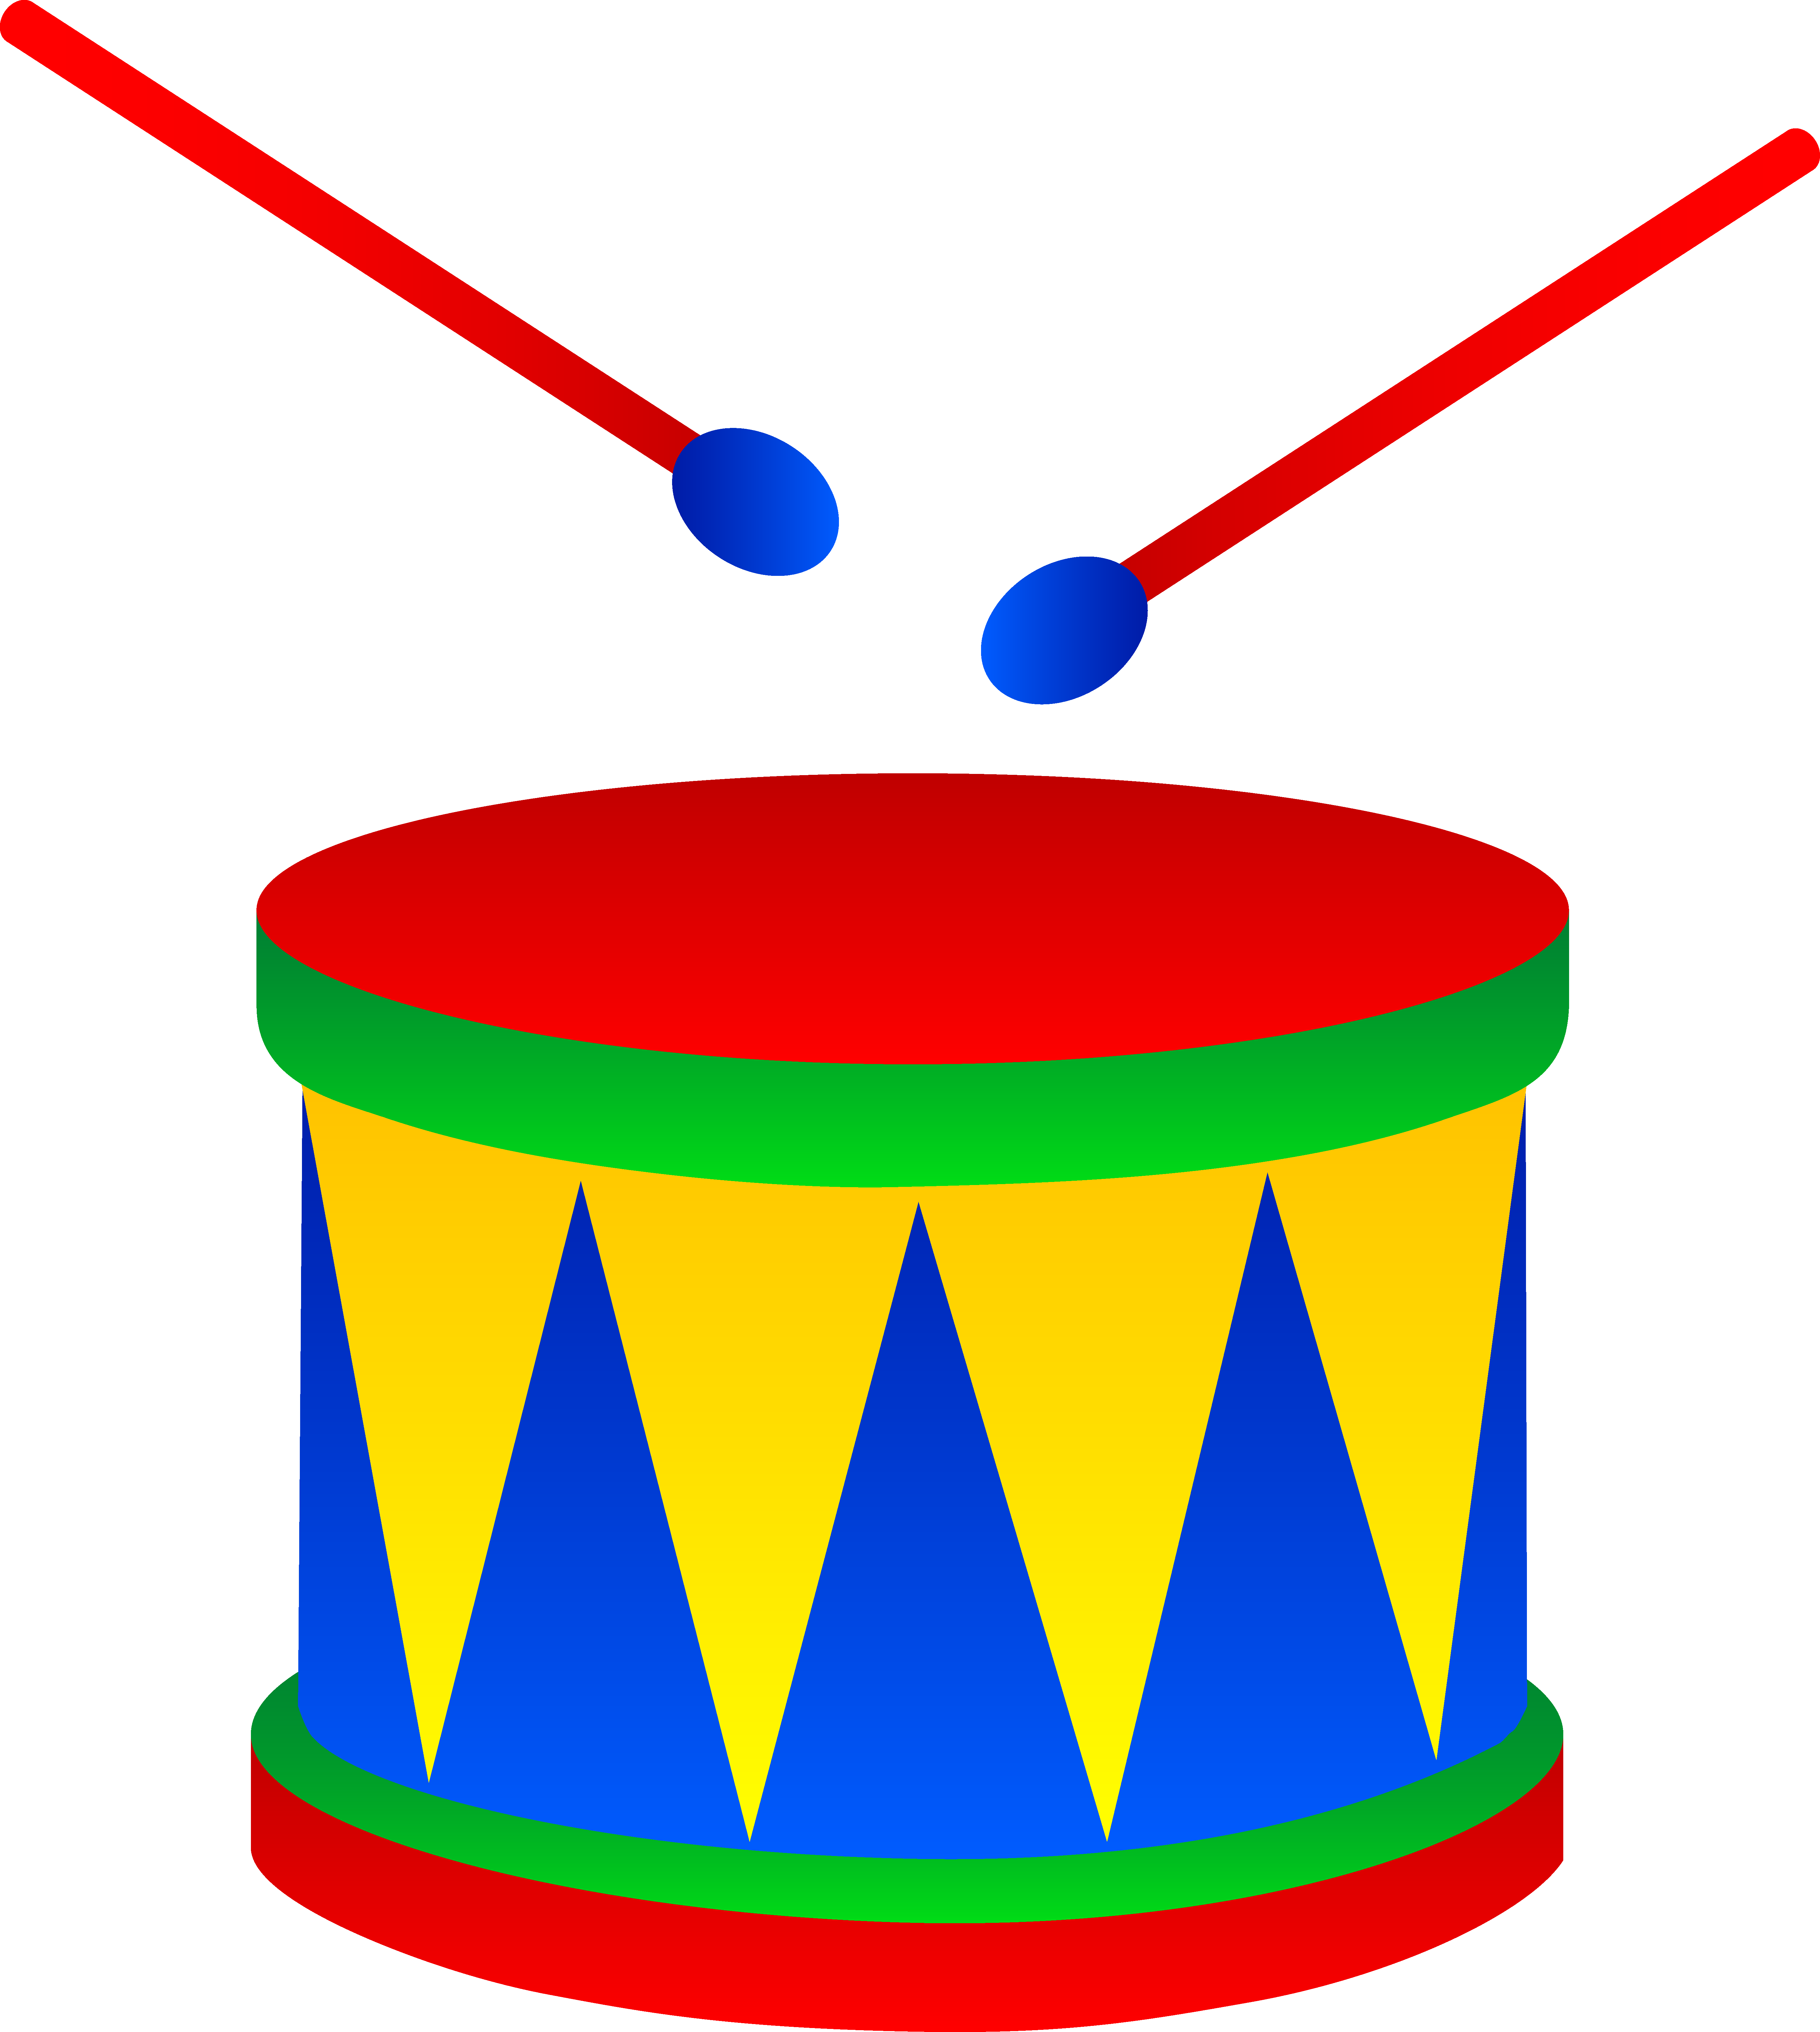 Pictures Of Drums   Free download best Pictures Of Drums on